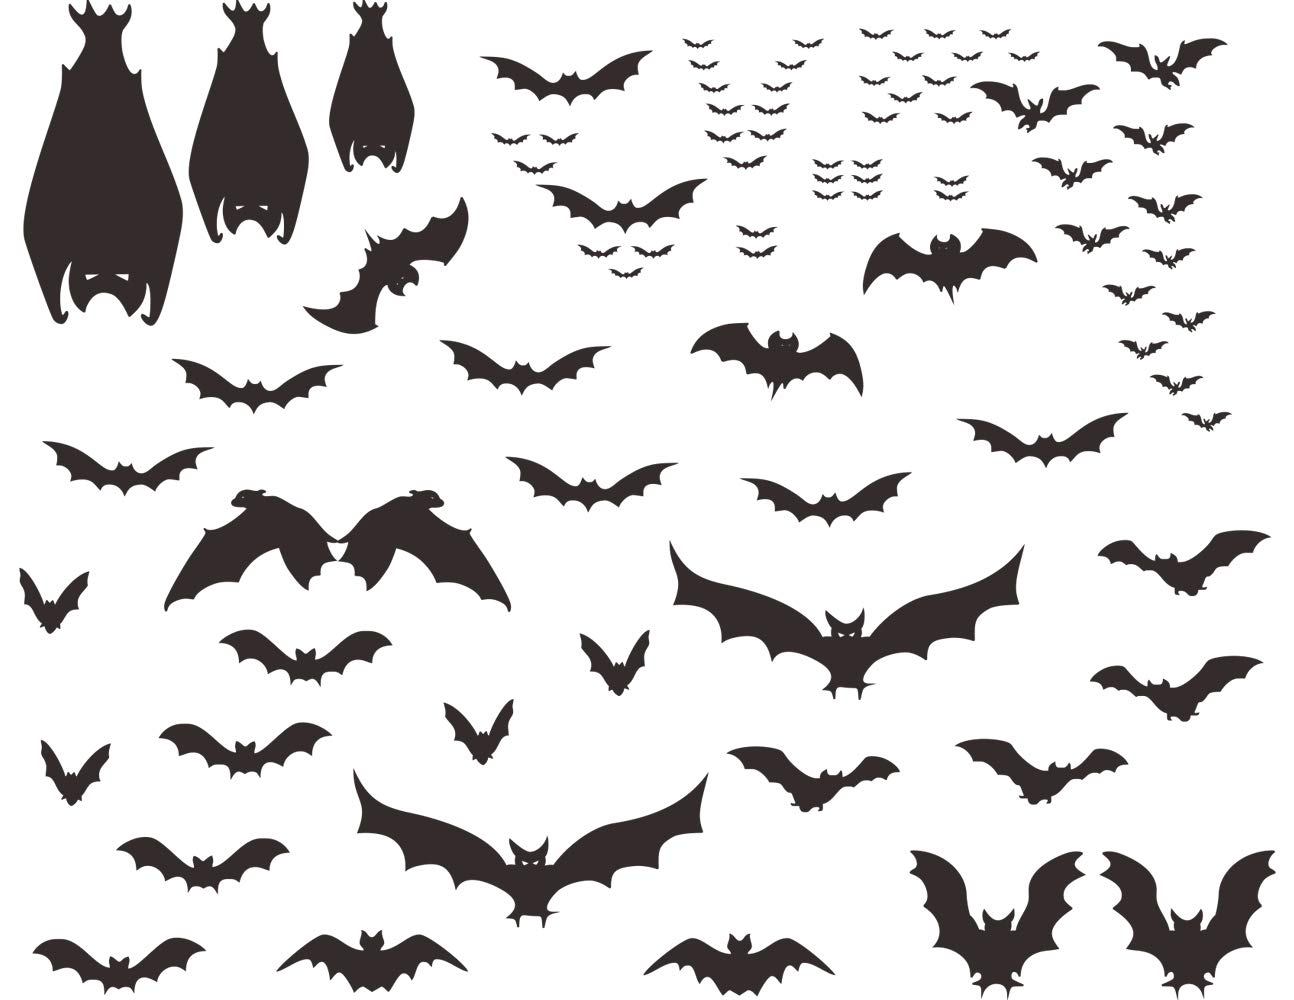 Mozamy Creative Halloween Bats Wall Decals Halloween Décor Black Bats Decals Halloween Decorations by Mozamy Creative